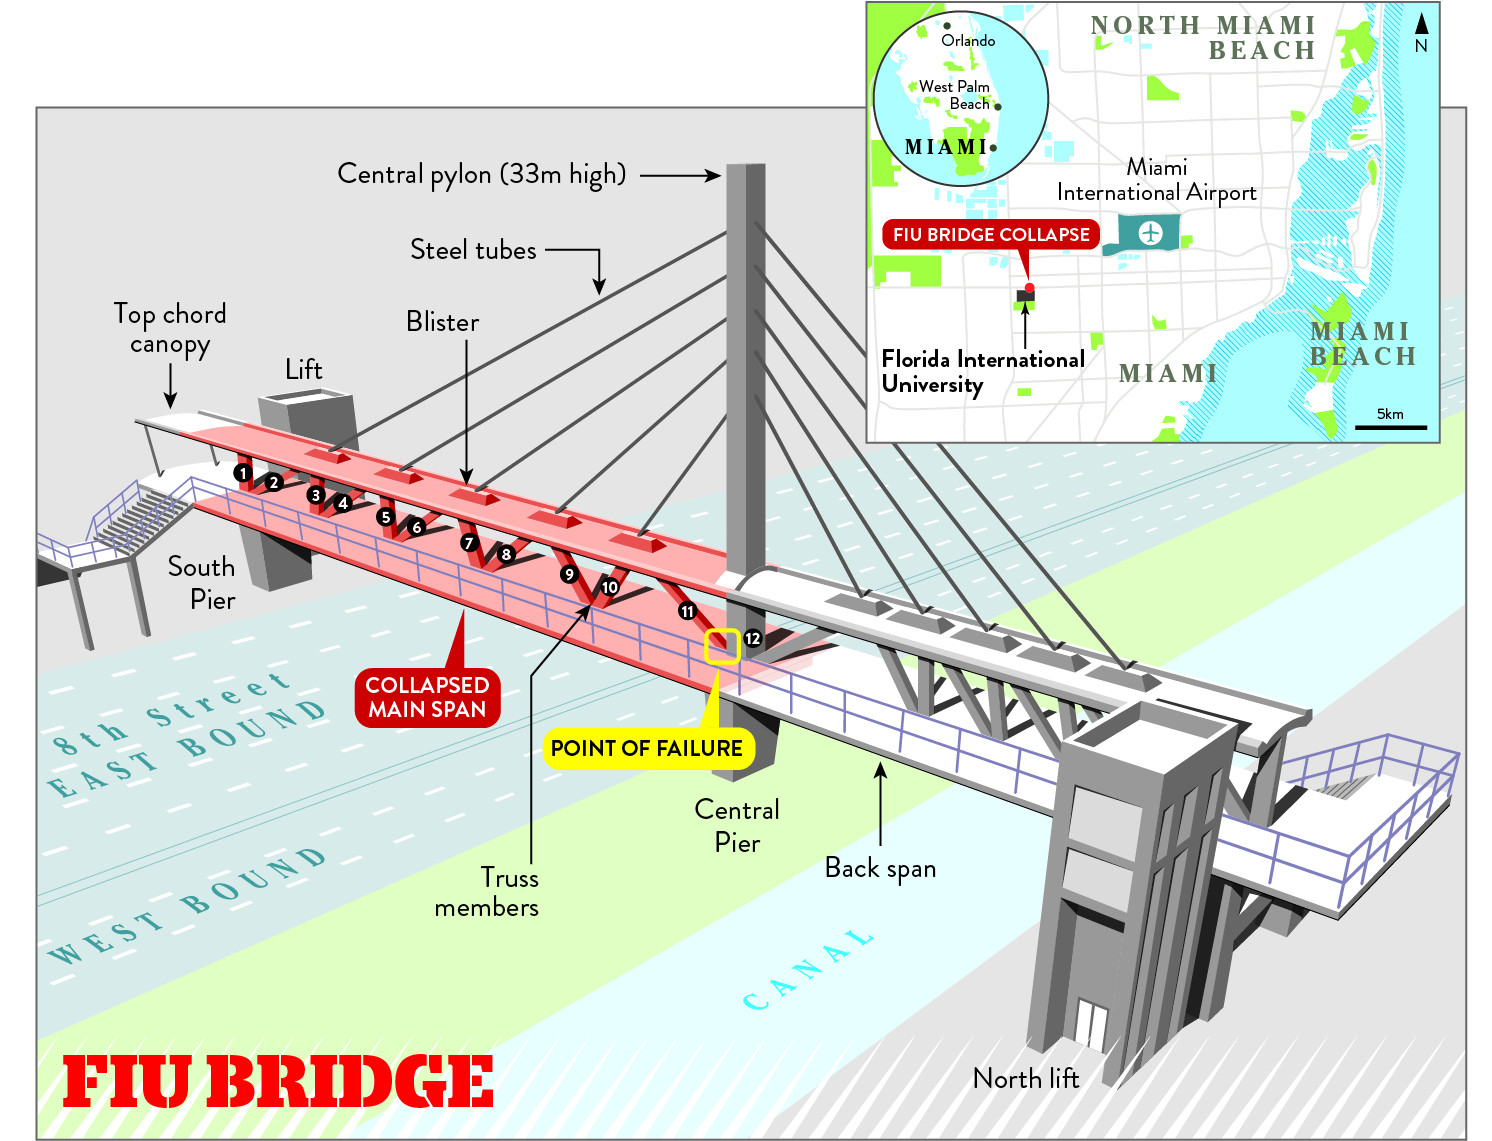 Florida Bridge Collapse Catalogue Of Engineering Errors Revealed In Final Report New Civil Engineer